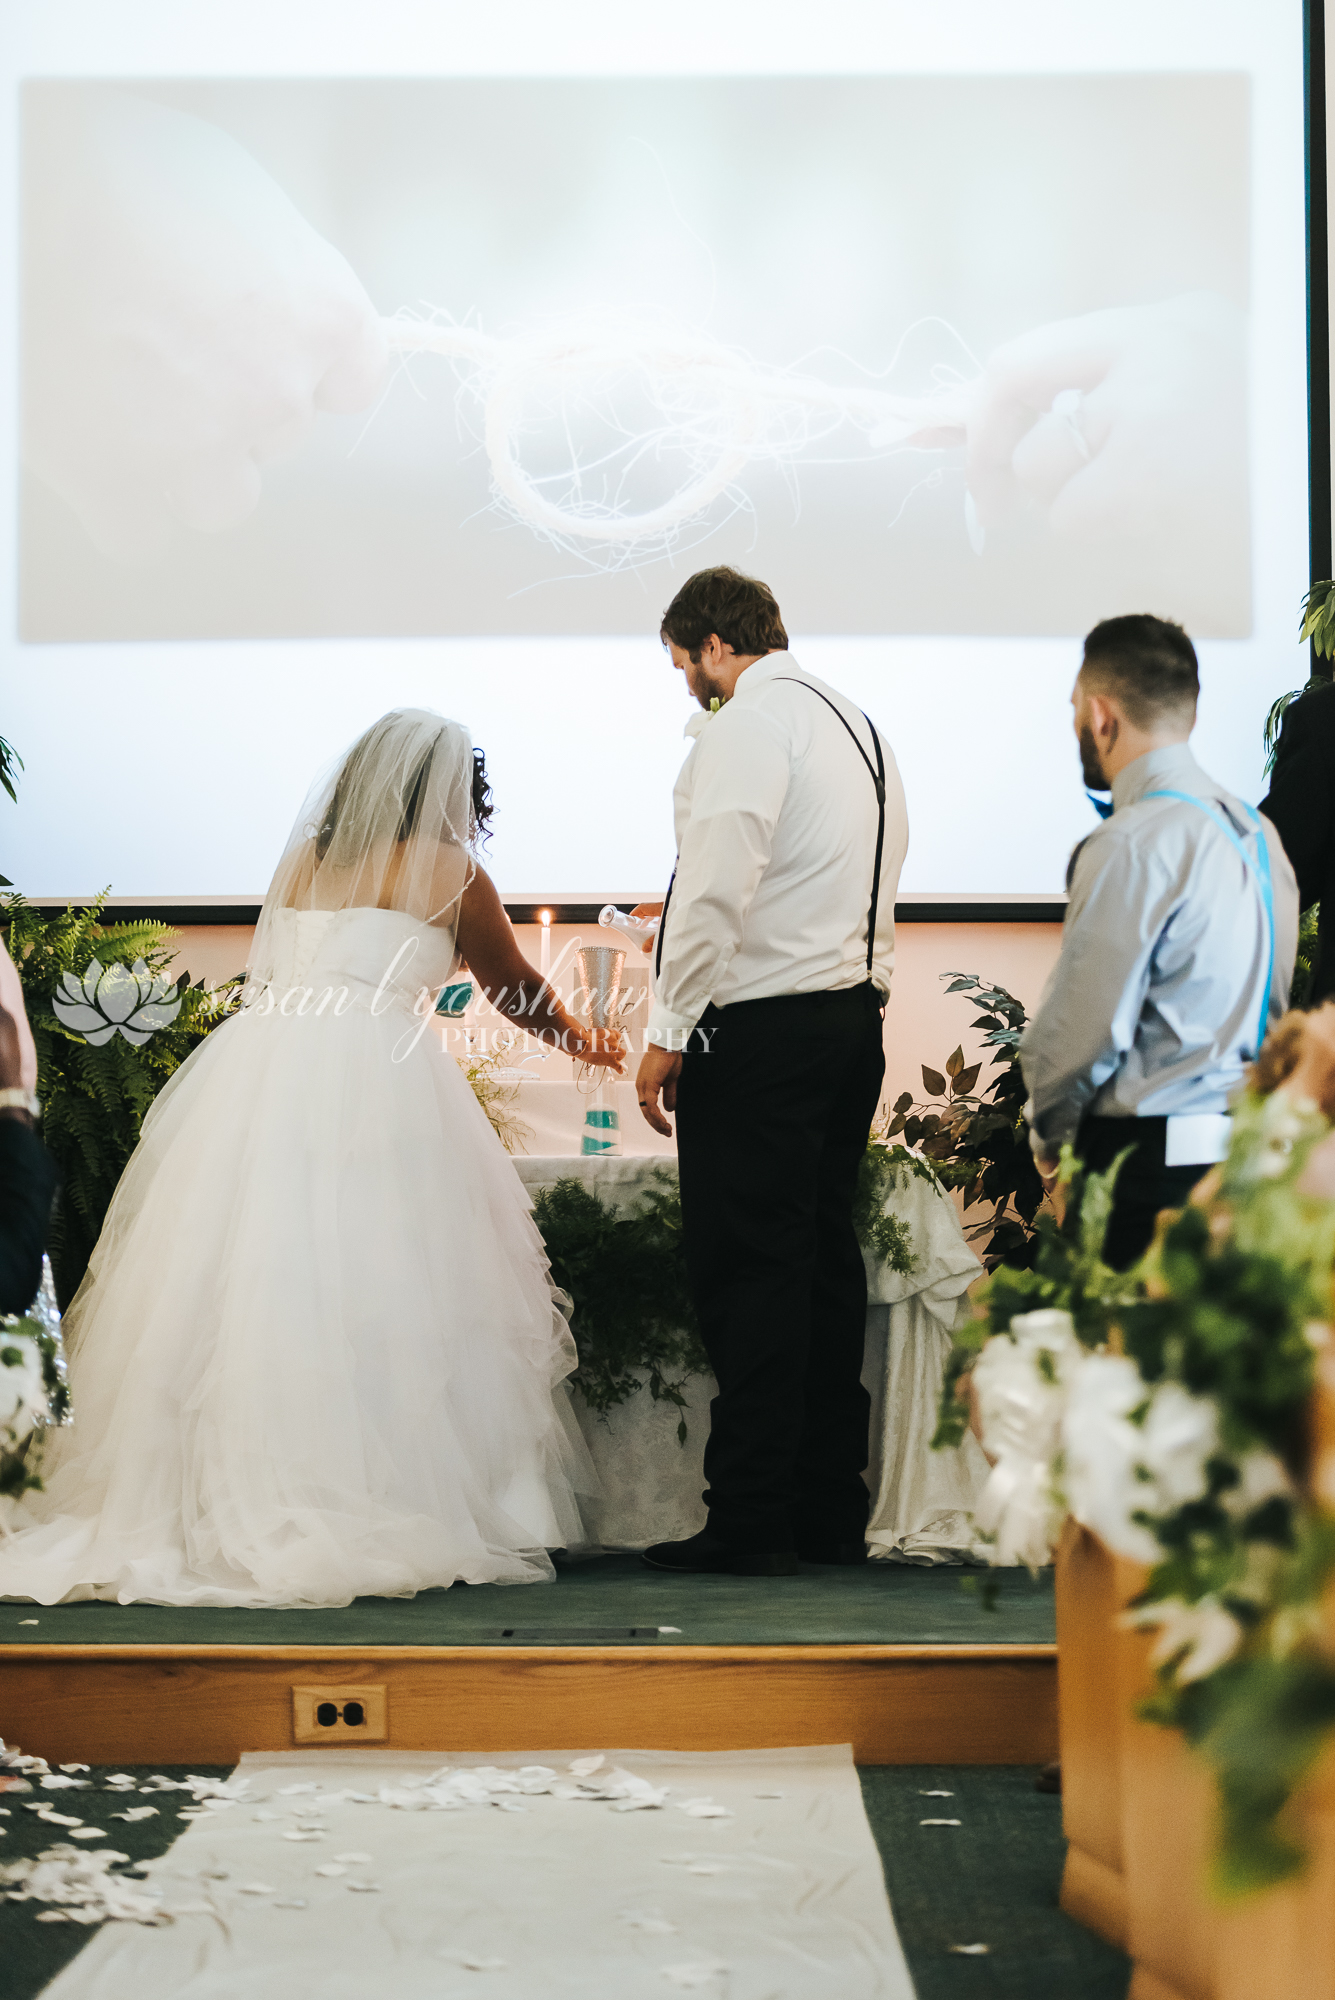 Katelyn and Wes Wedding Photos 07-13-2019 SLY Photography-76.jpg